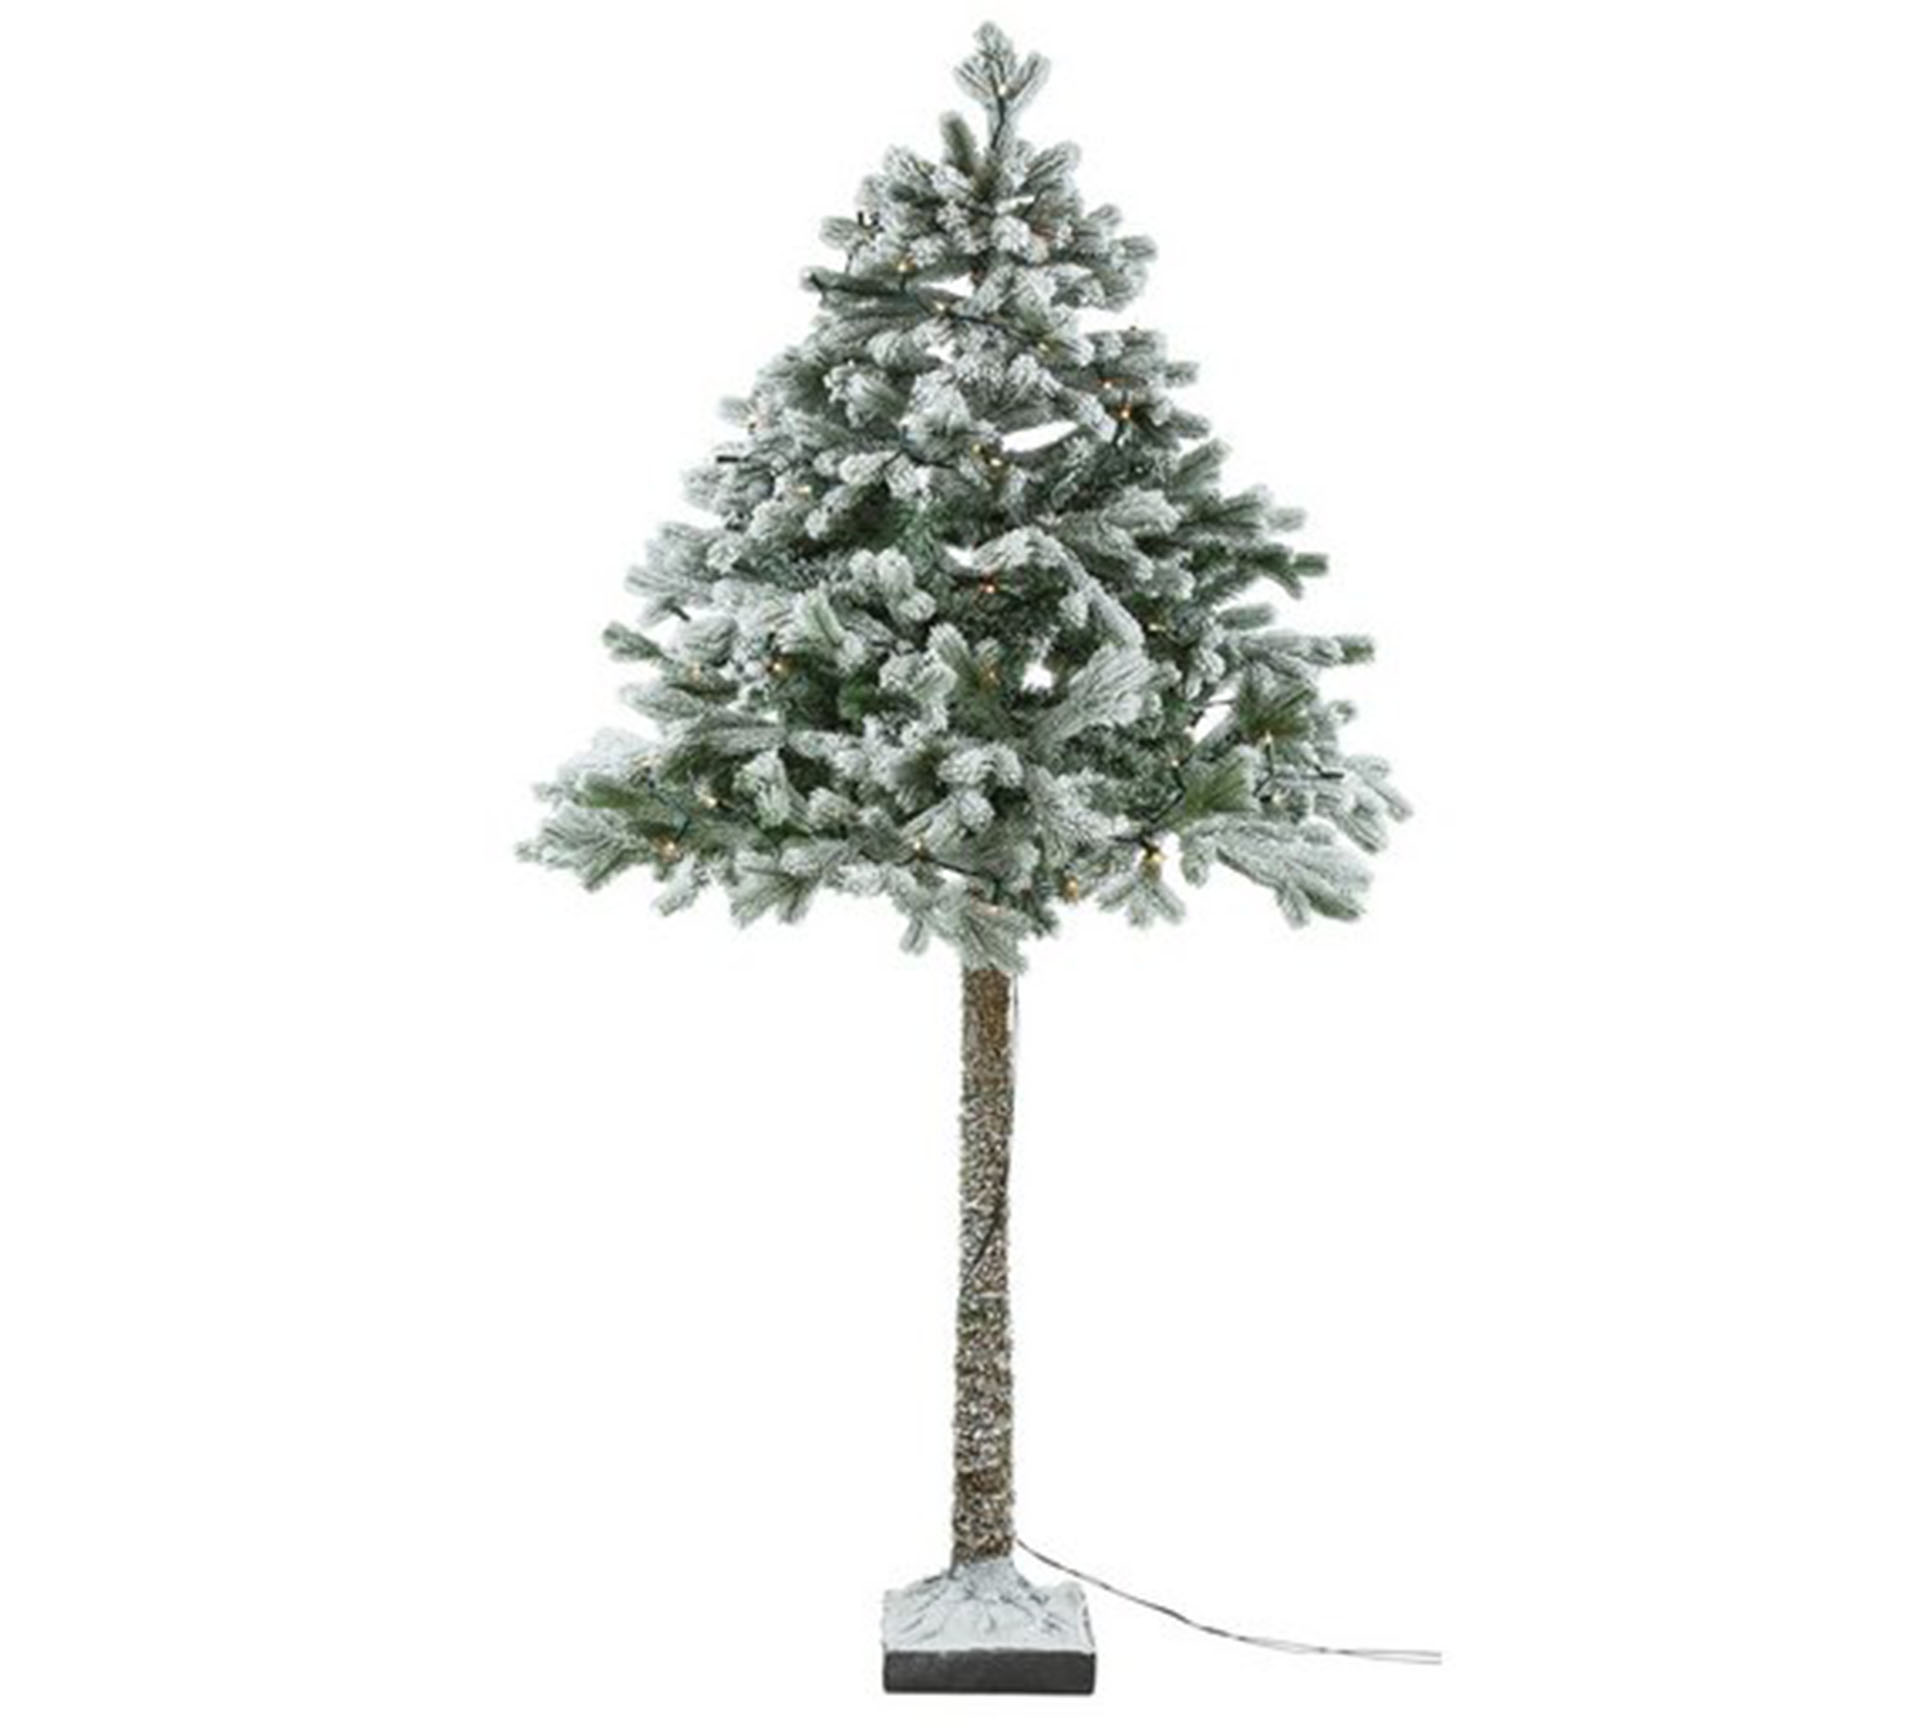 Christmas Tree Alternatives For Cat Owners.Argos Is Selling A Half Christmas Tree For People With